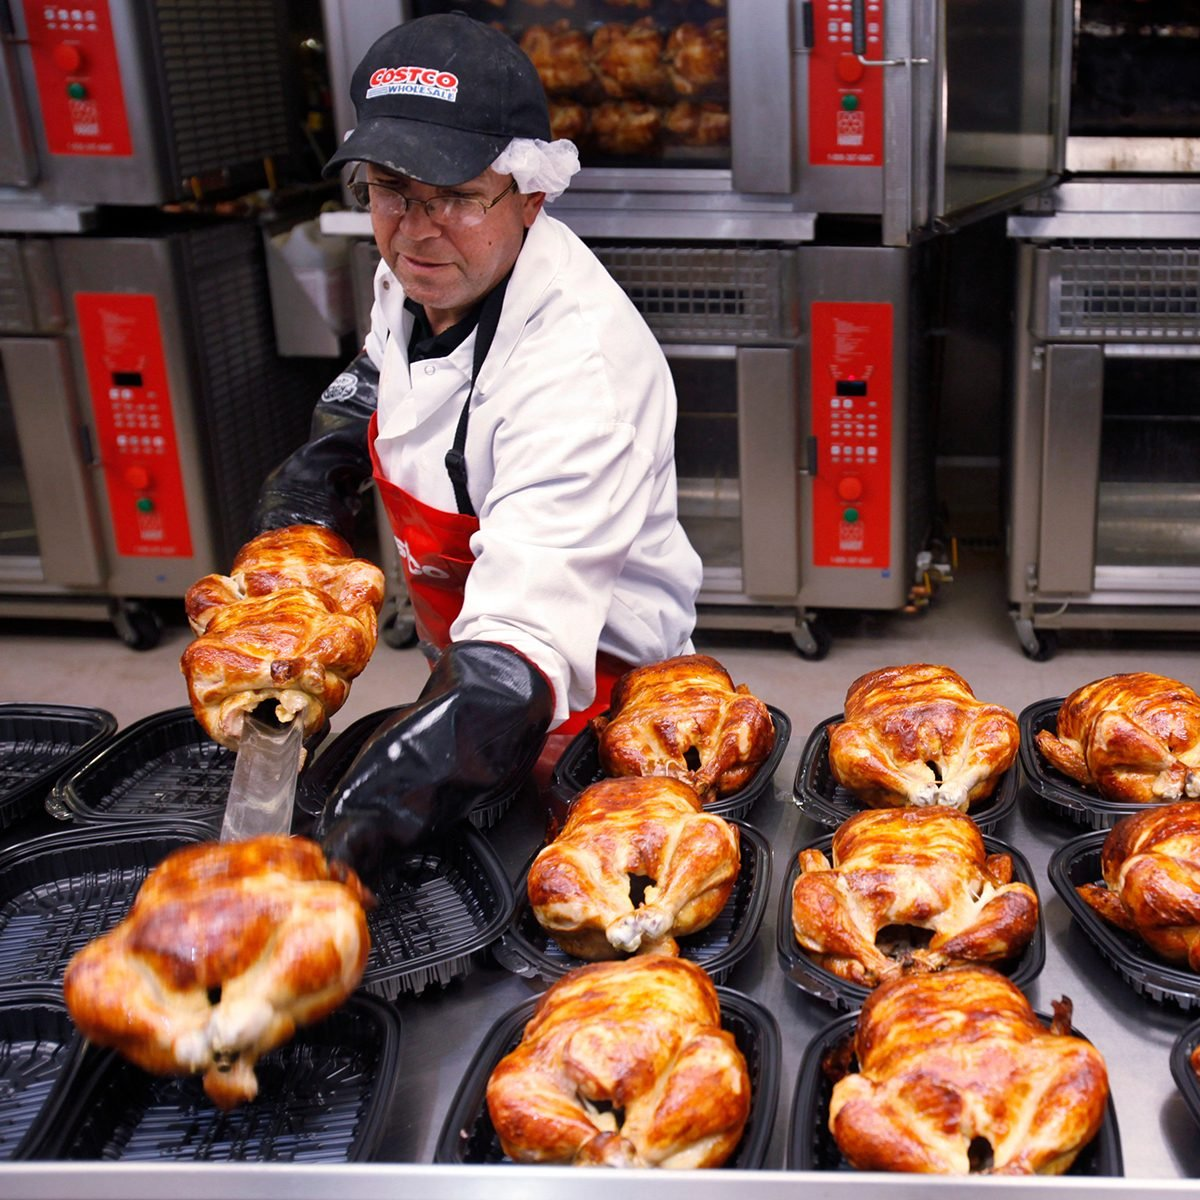 A Costco employee cooks chicken at Costco in Mountain View, Calif.